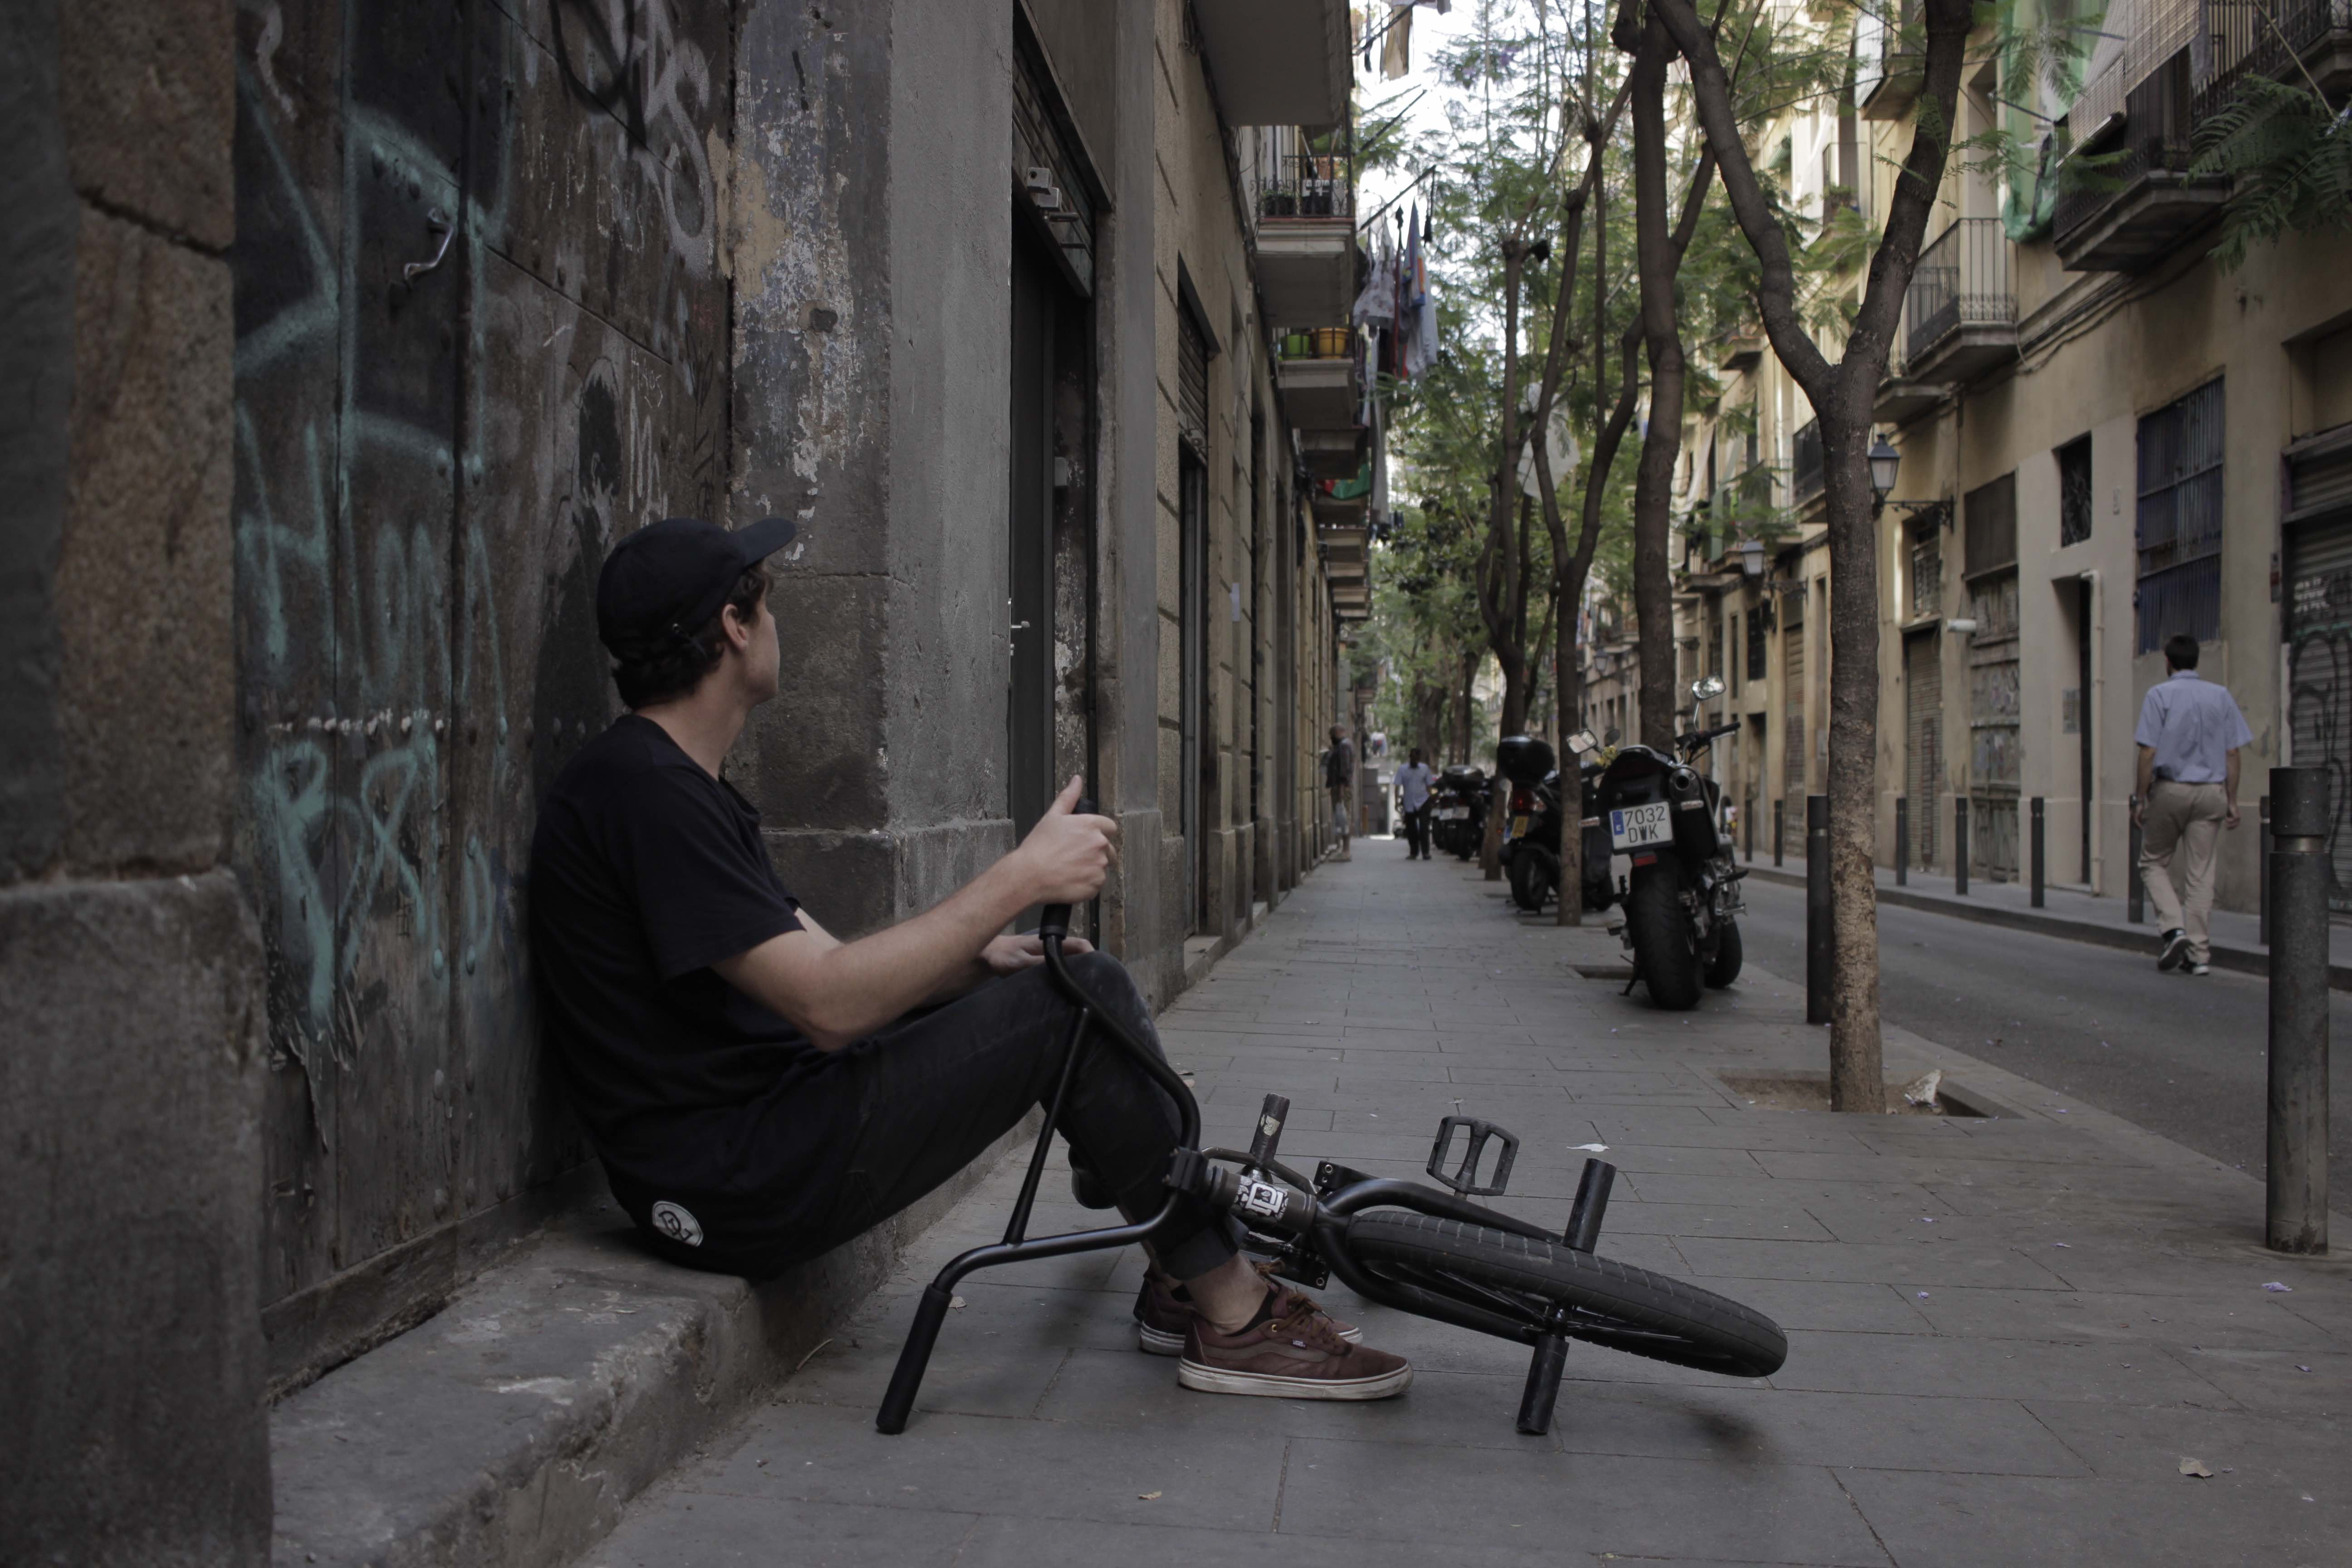 Brandon Blight and Werner Hendrich riding BMX street for their video part entitle Snacking Barcelona